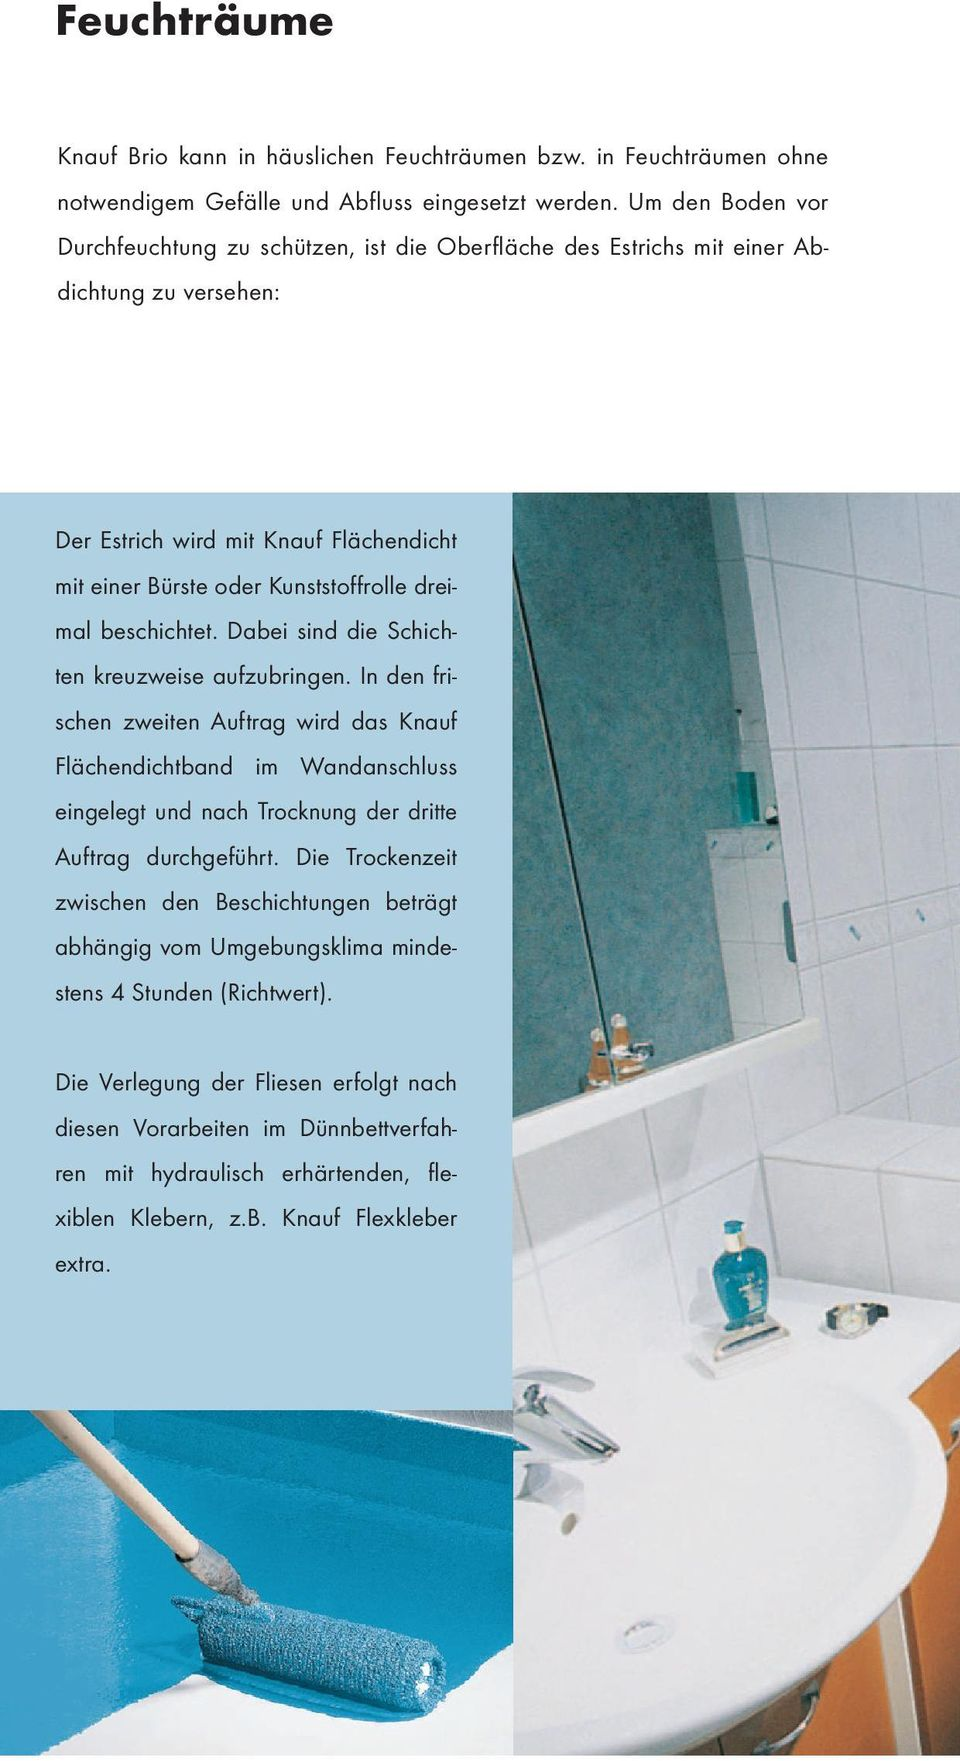 knauf fertigteilestrich brio verarbeitungsanleitung boden systeme 08 pdf. Black Bedroom Furniture Sets. Home Design Ideas